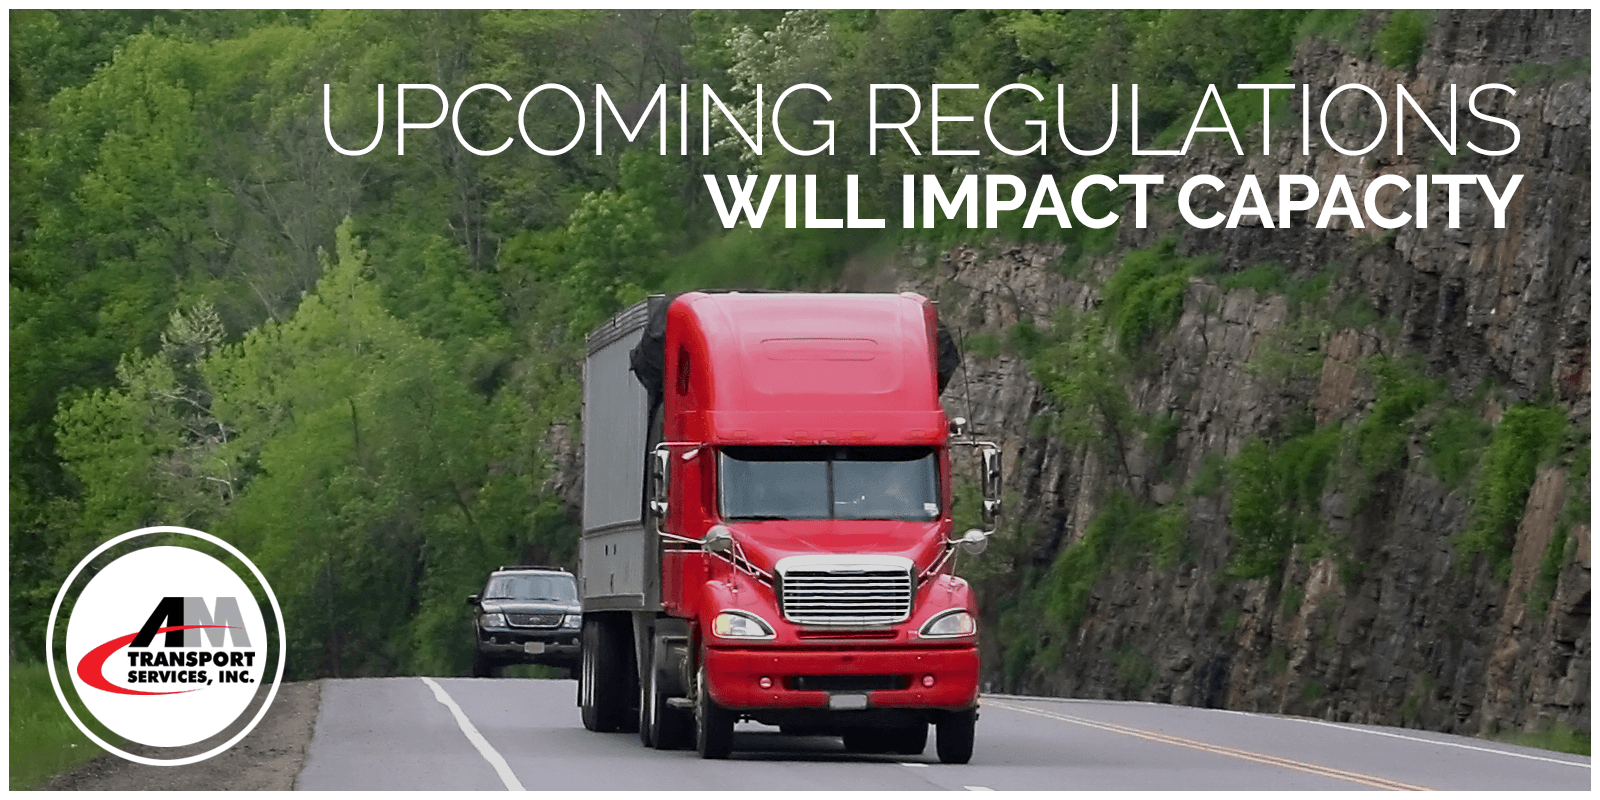 upcoming regulations will impact capacity over image of a truck